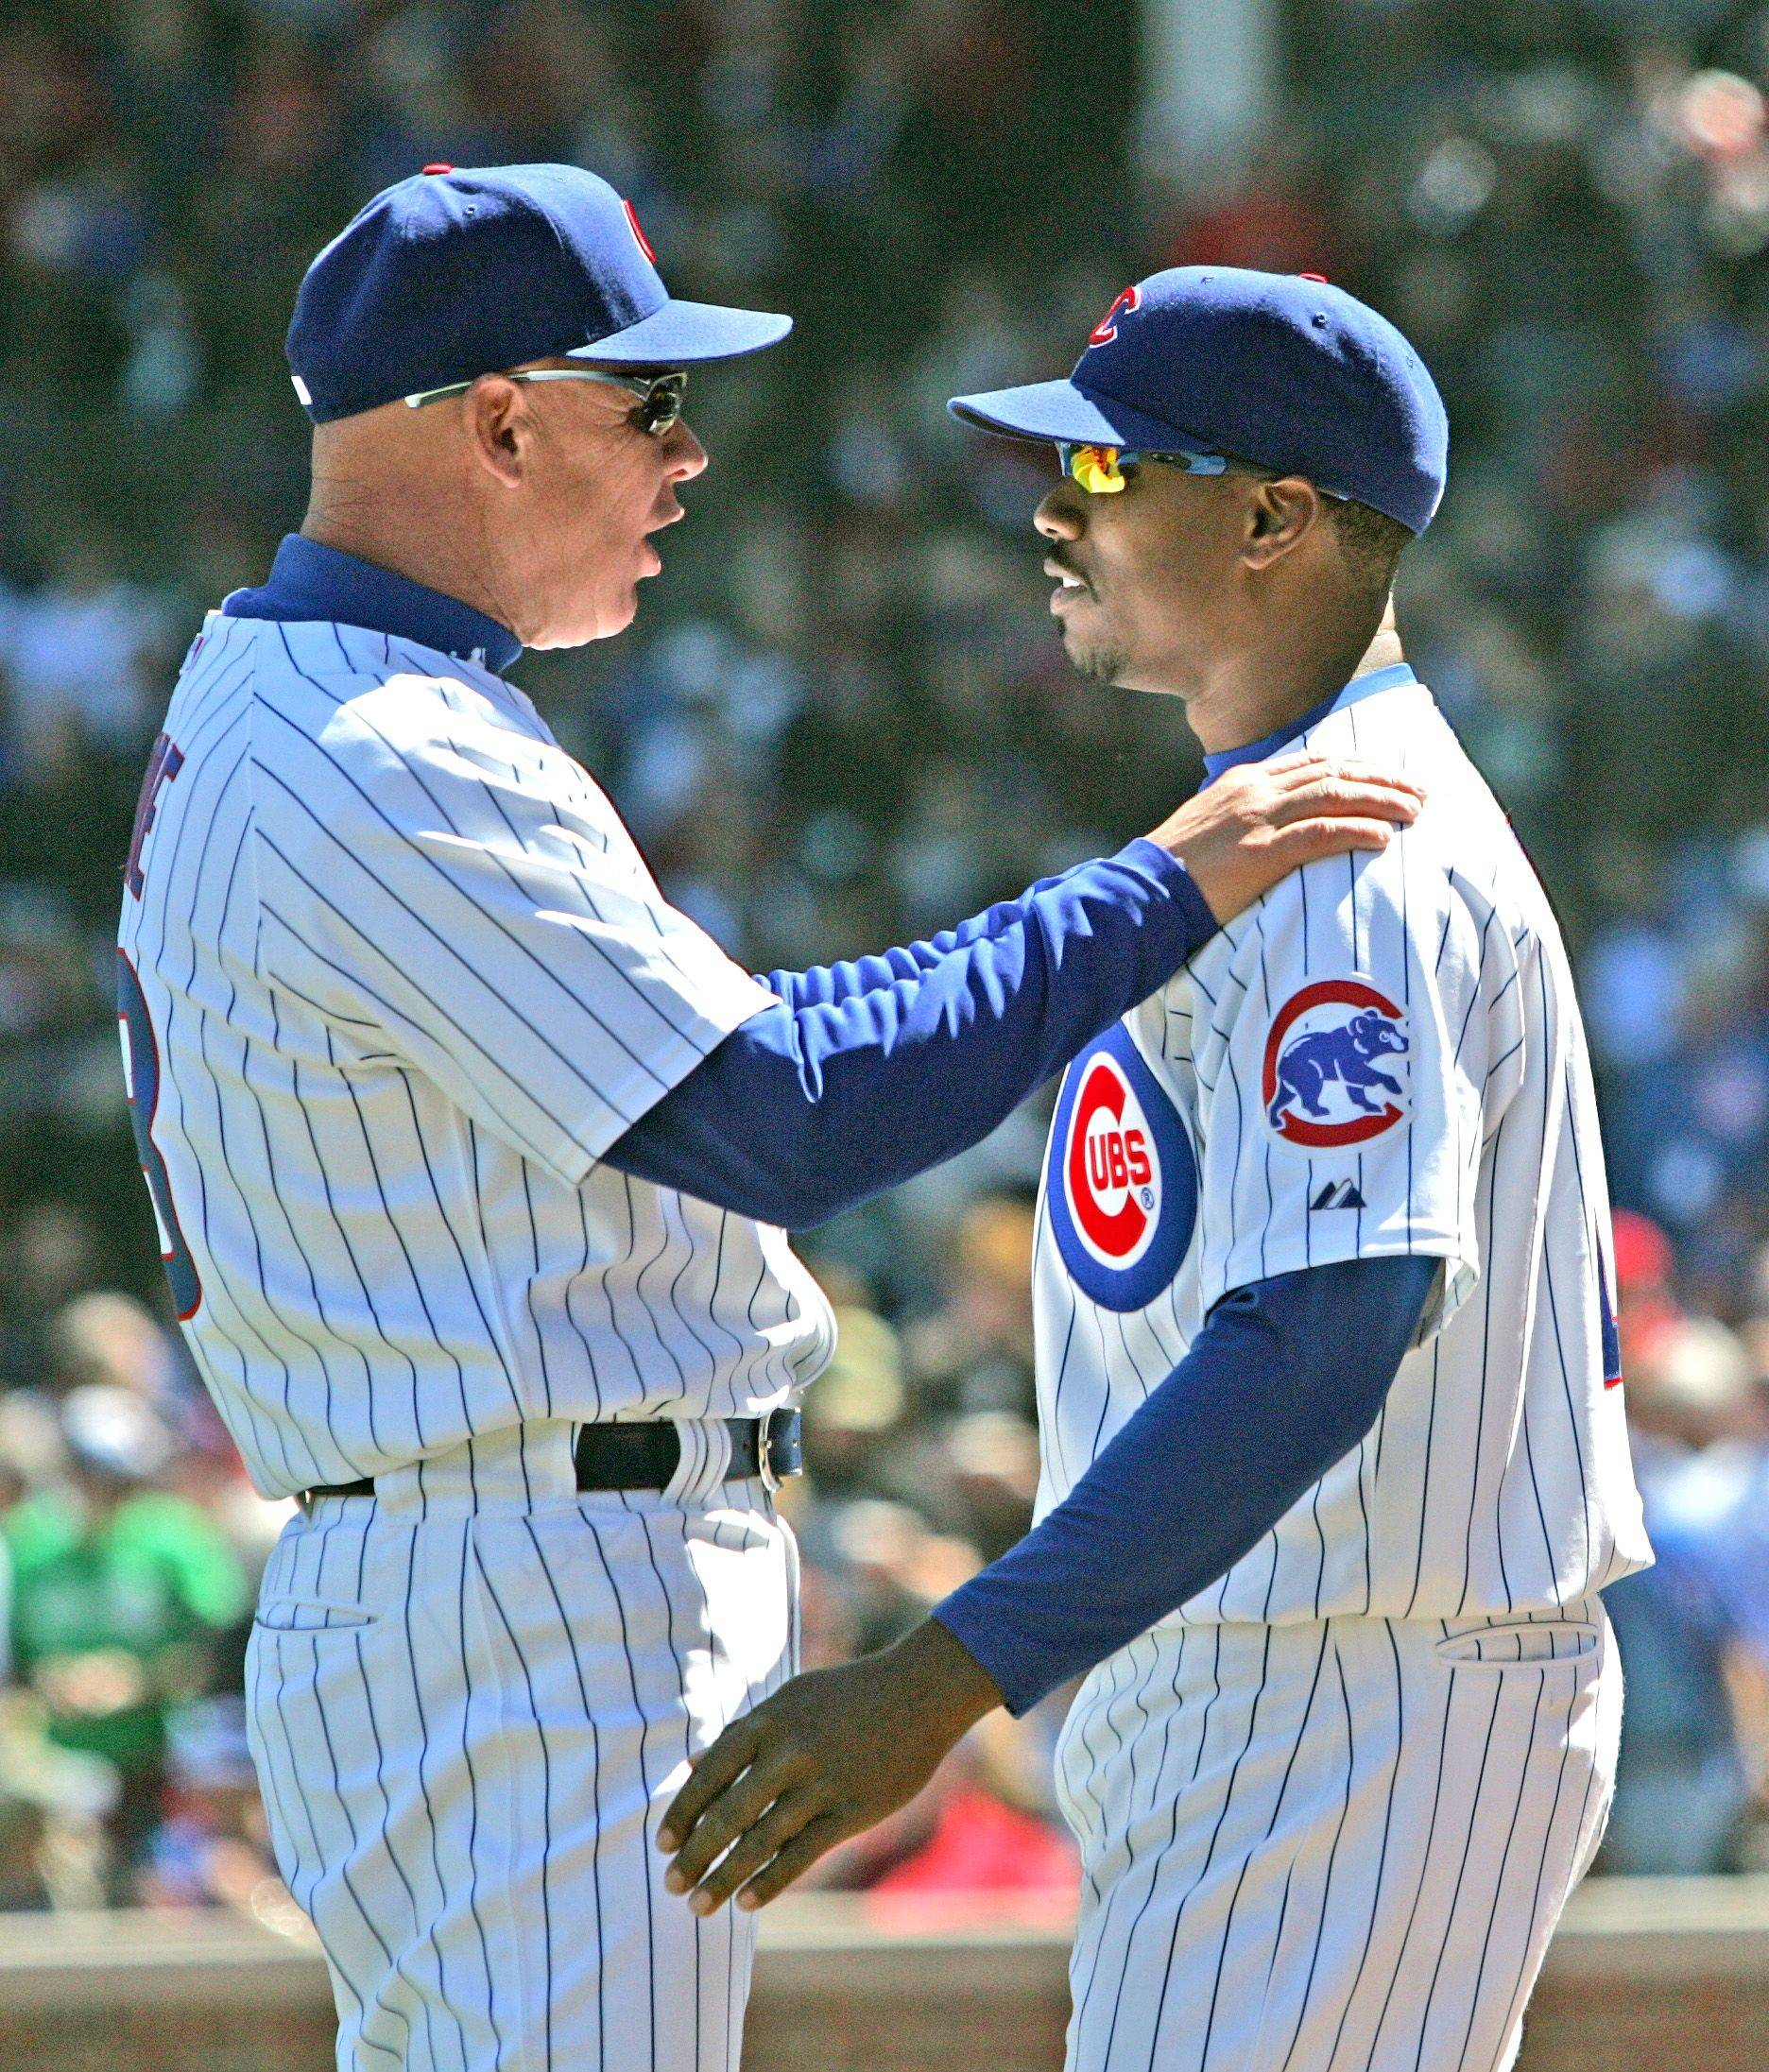 Chicago Cub third base coach Mike Quade talks to third baseman Aramis Ramirez during a game with the St. Louis Cardinals.